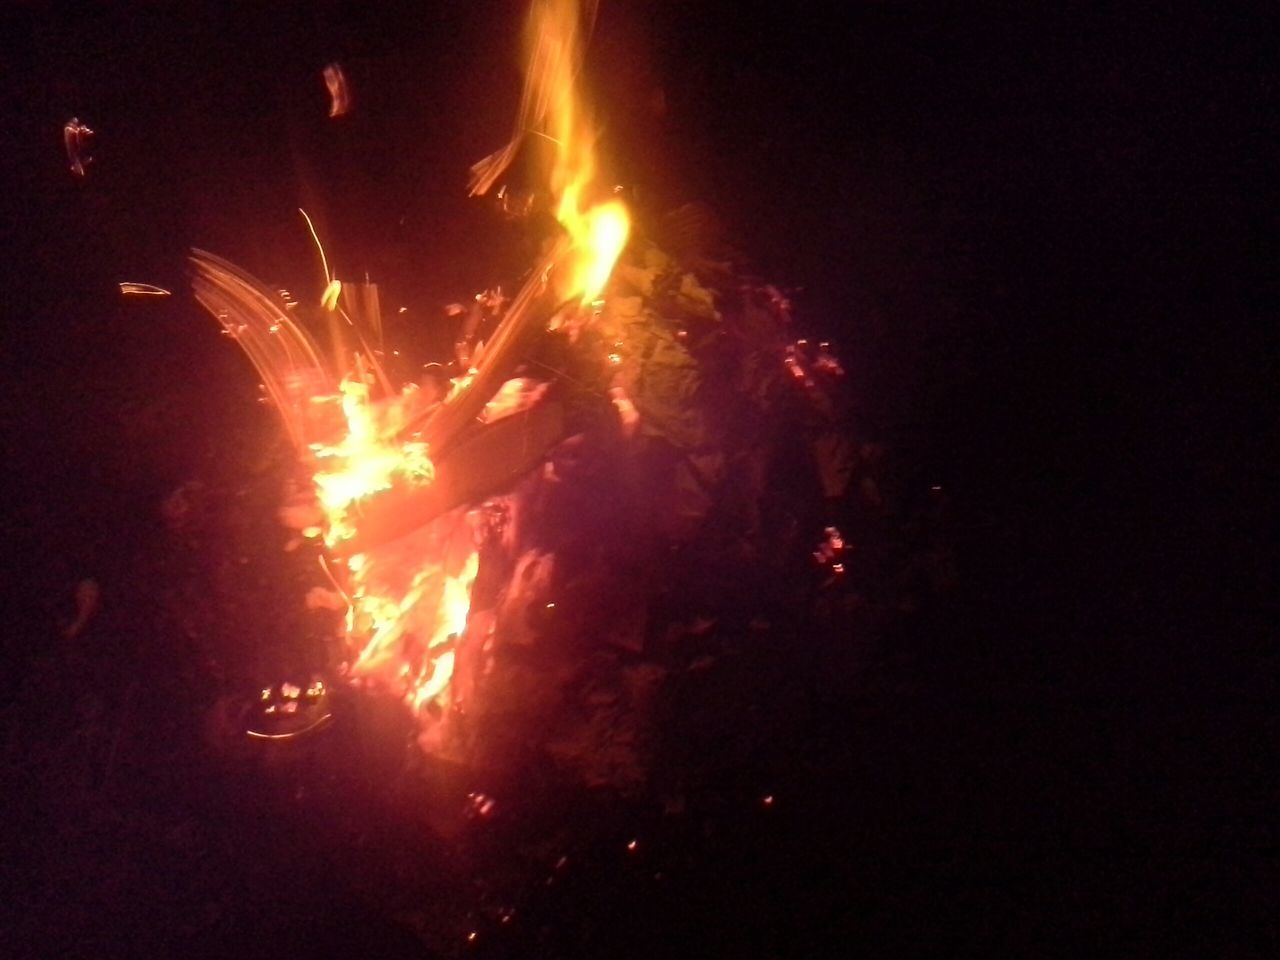 night, burning, heat - temperature, flame, glowing, outdoors, bonfire, no people, close-up